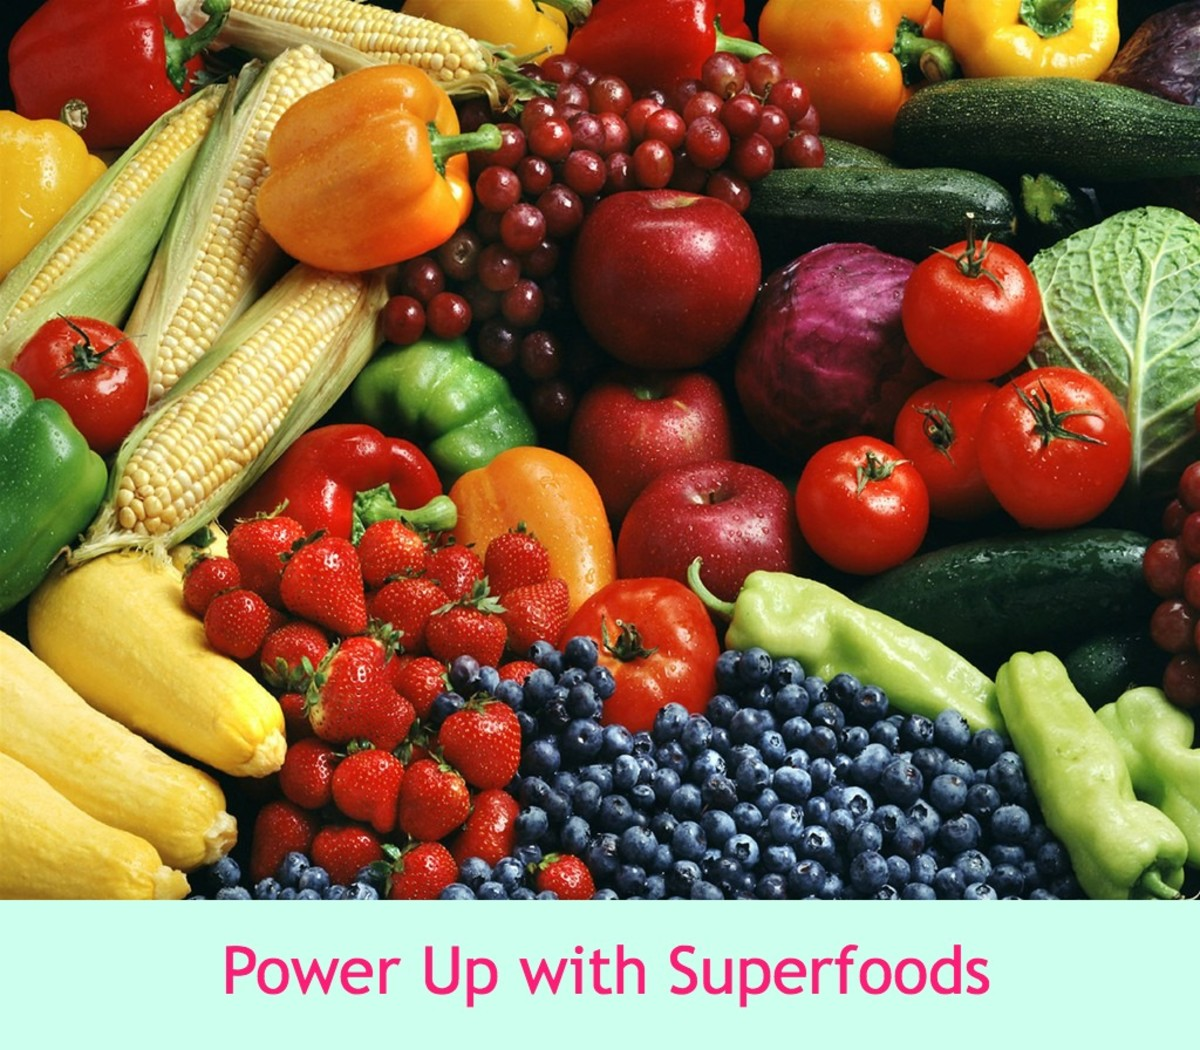 superfoods, superfoods for moms, superfoods for kids